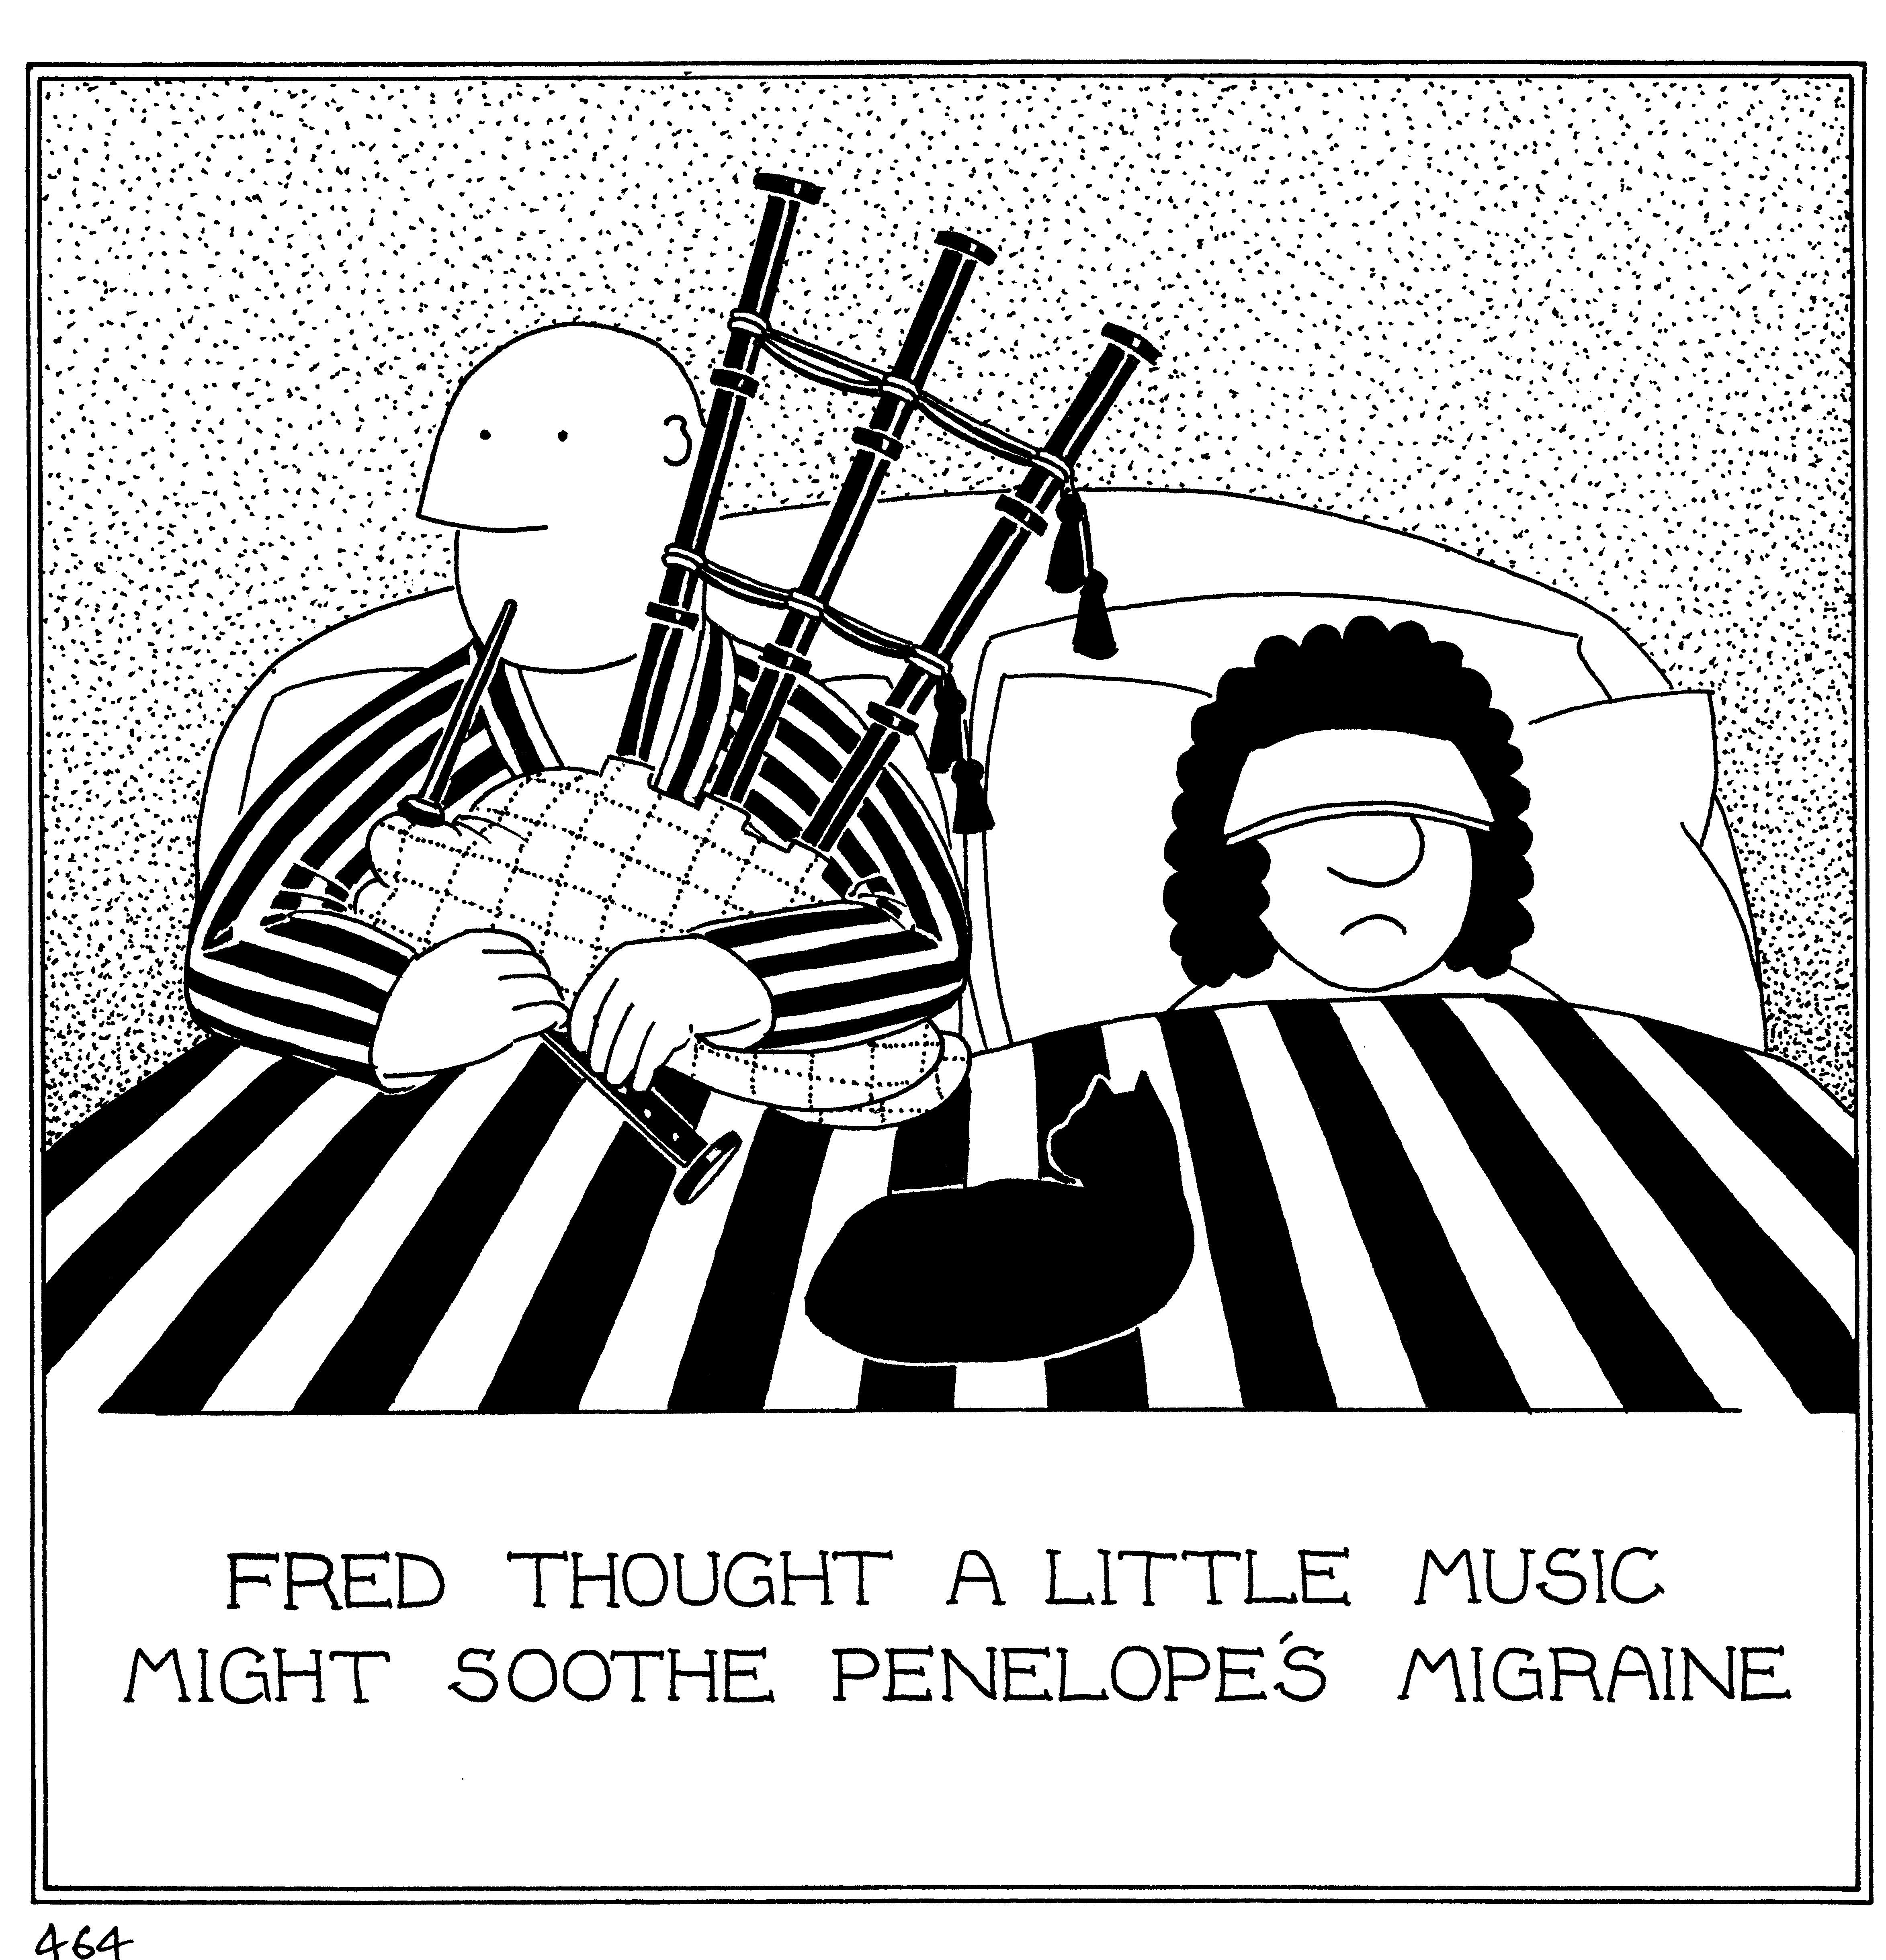 Fred Thought A Little Music Might Soothe Penelope S